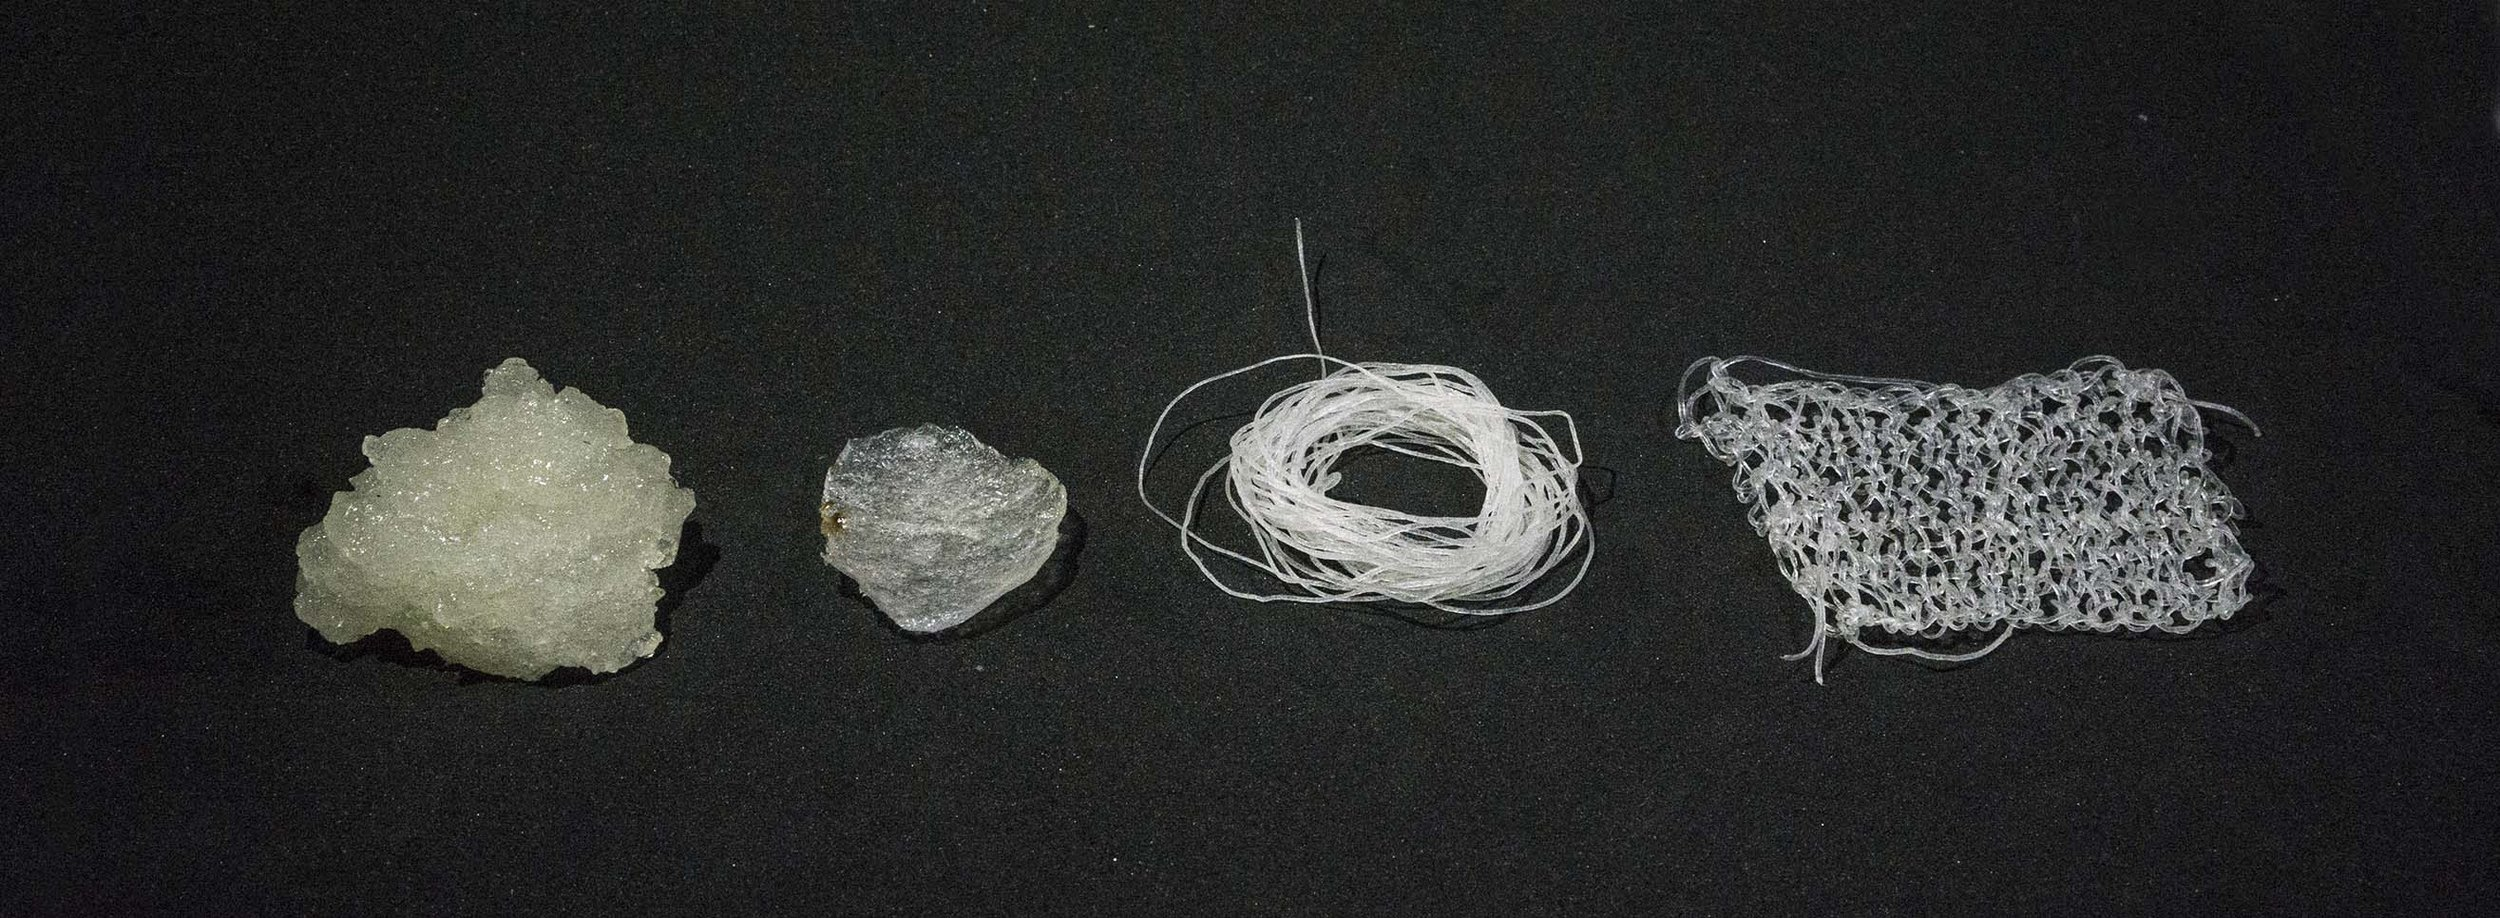 Seen here is AlgiKnit's transformation of their biomaterial from paste, to monofilament (yarn) and then a knit panel for bio-based textile.